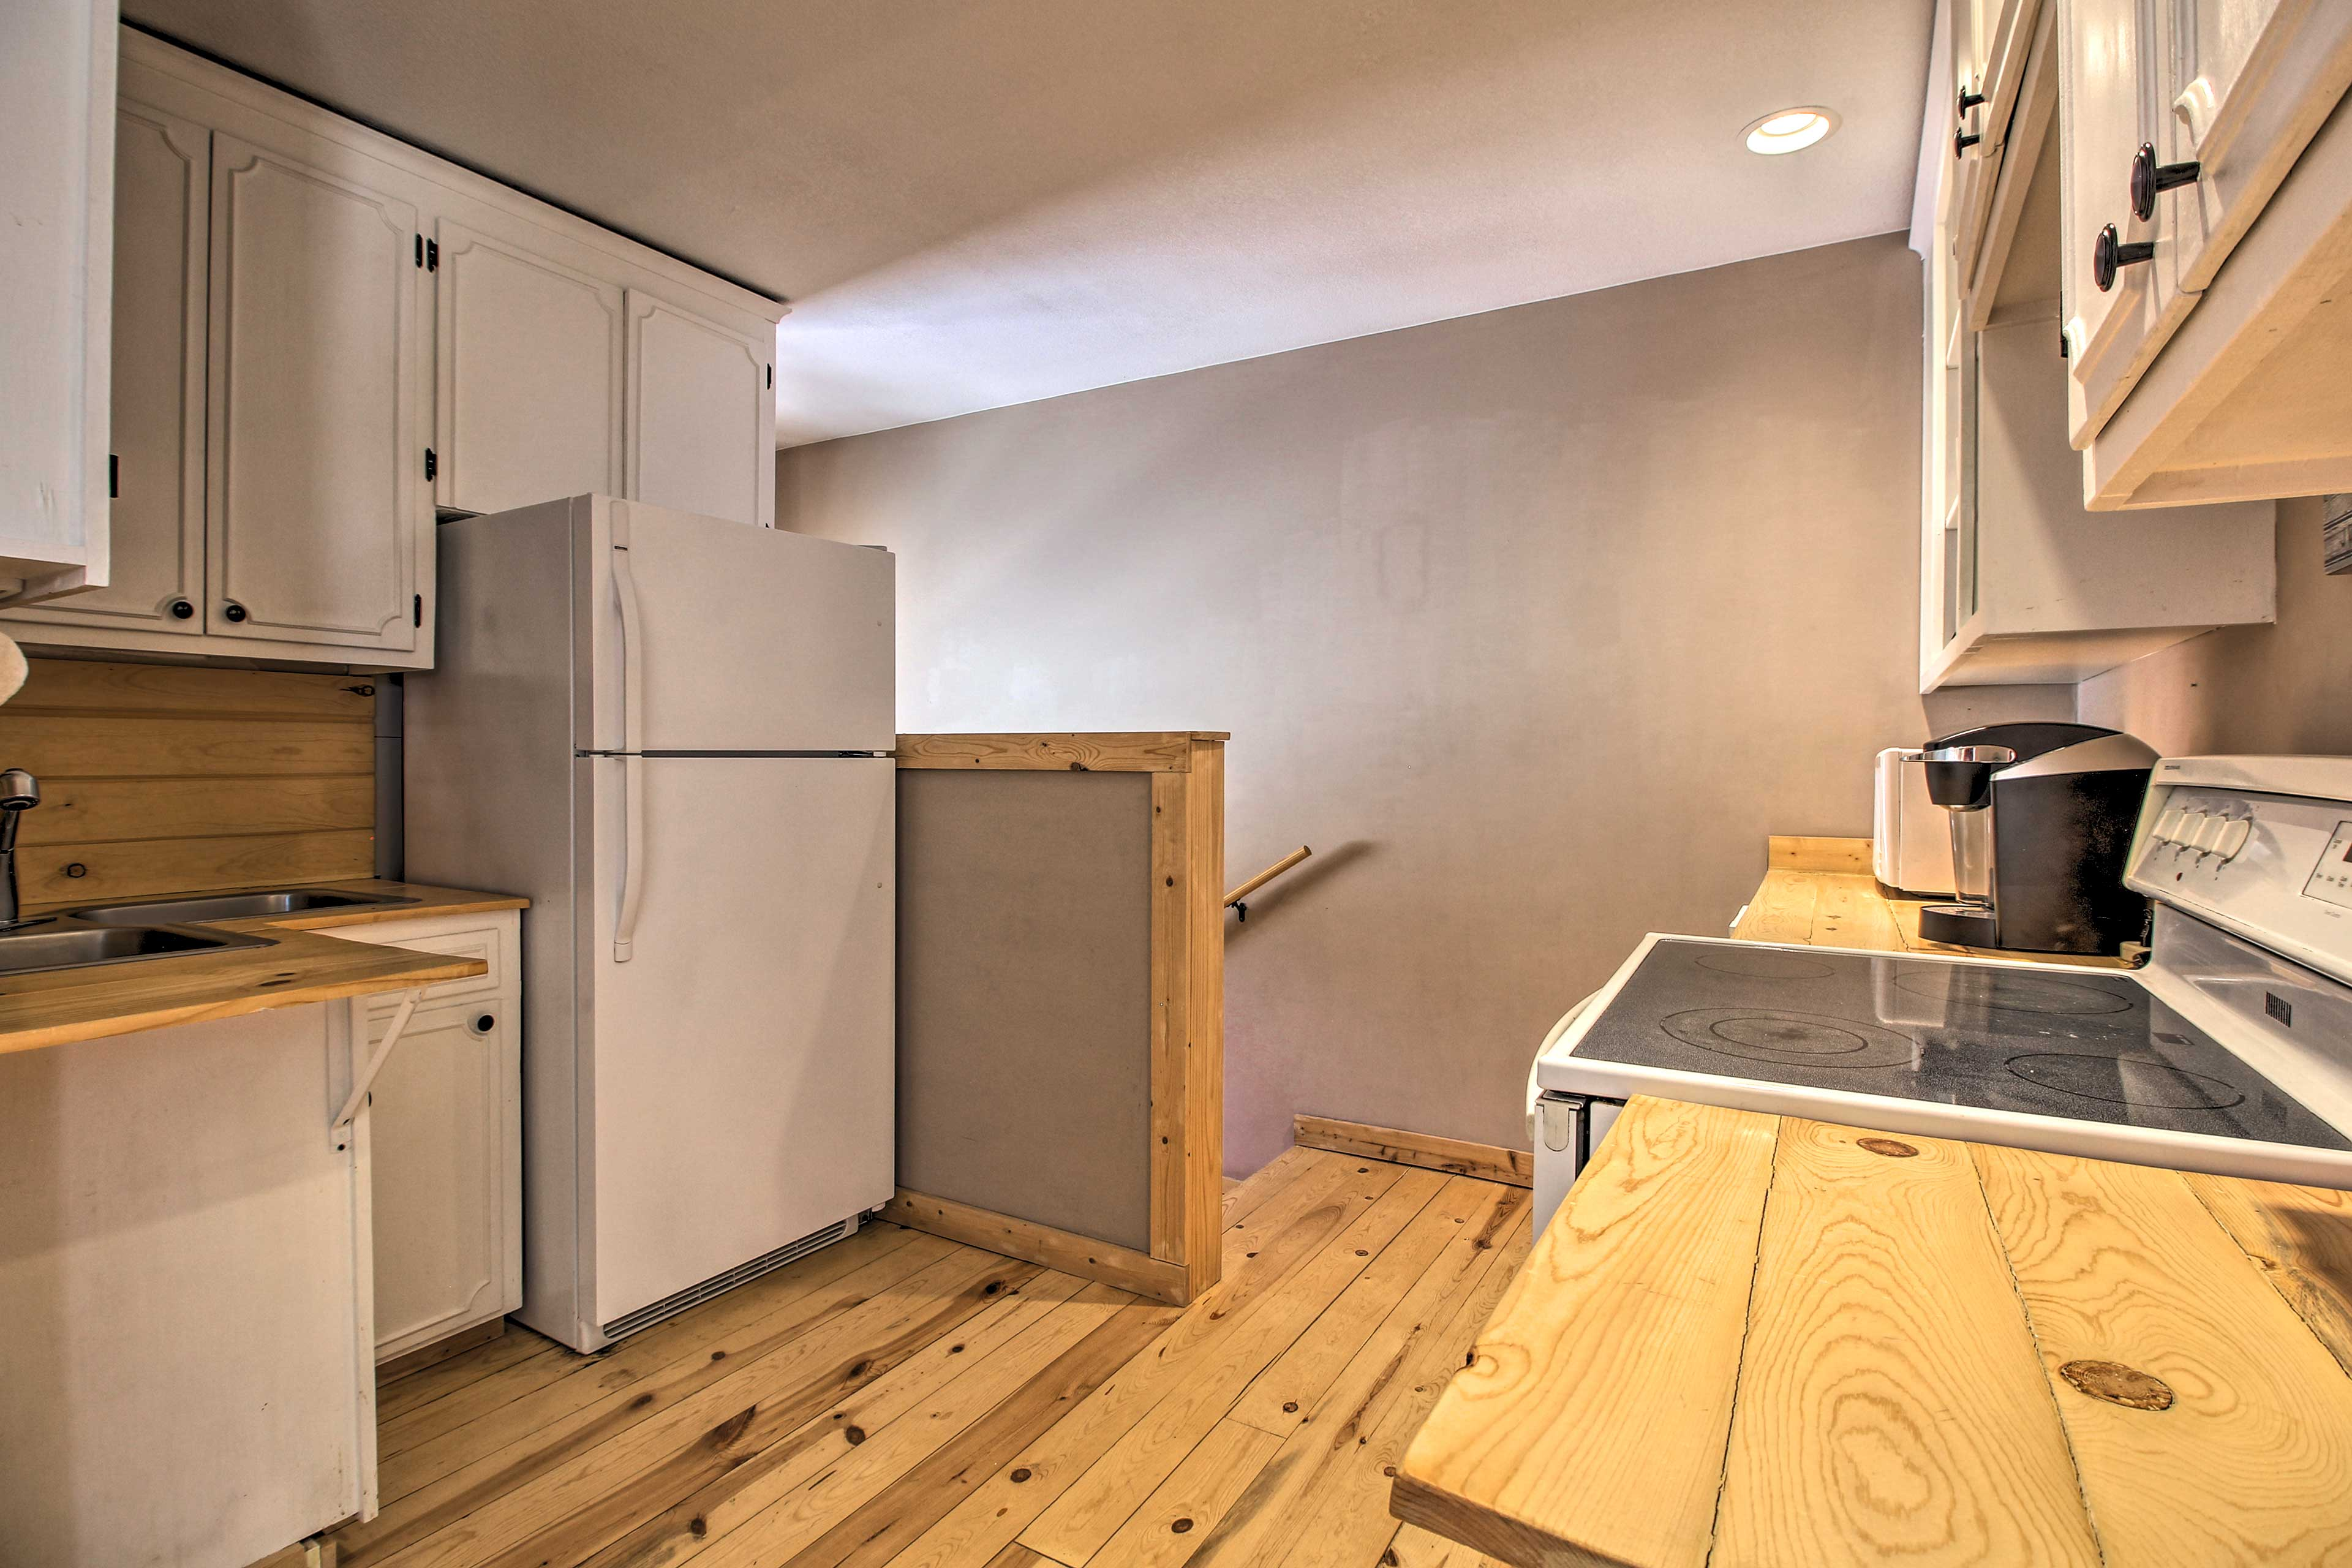 Upstairs an additional fully equipped kitchen is available!